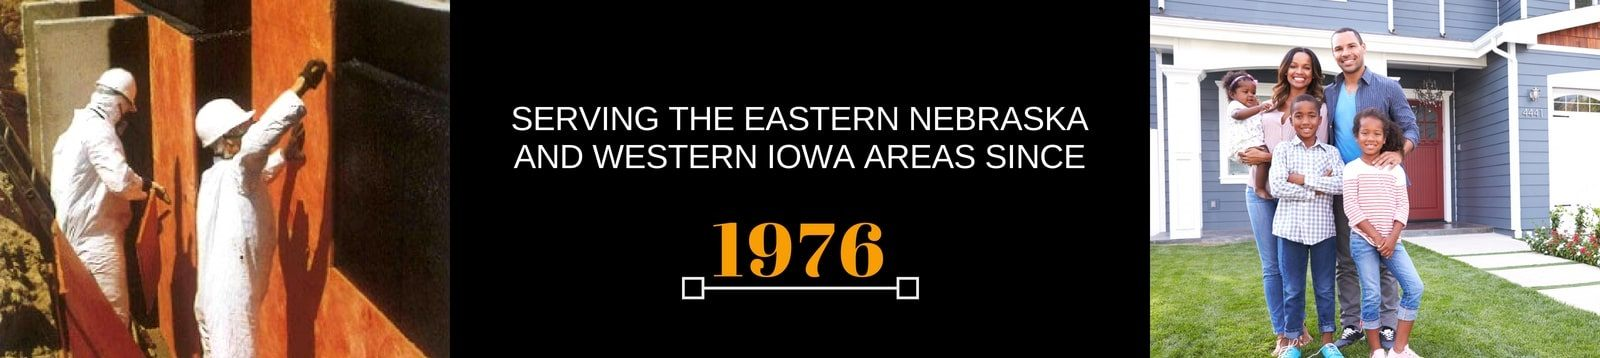 serving the eastern nebraska and western iowa areas since 1976